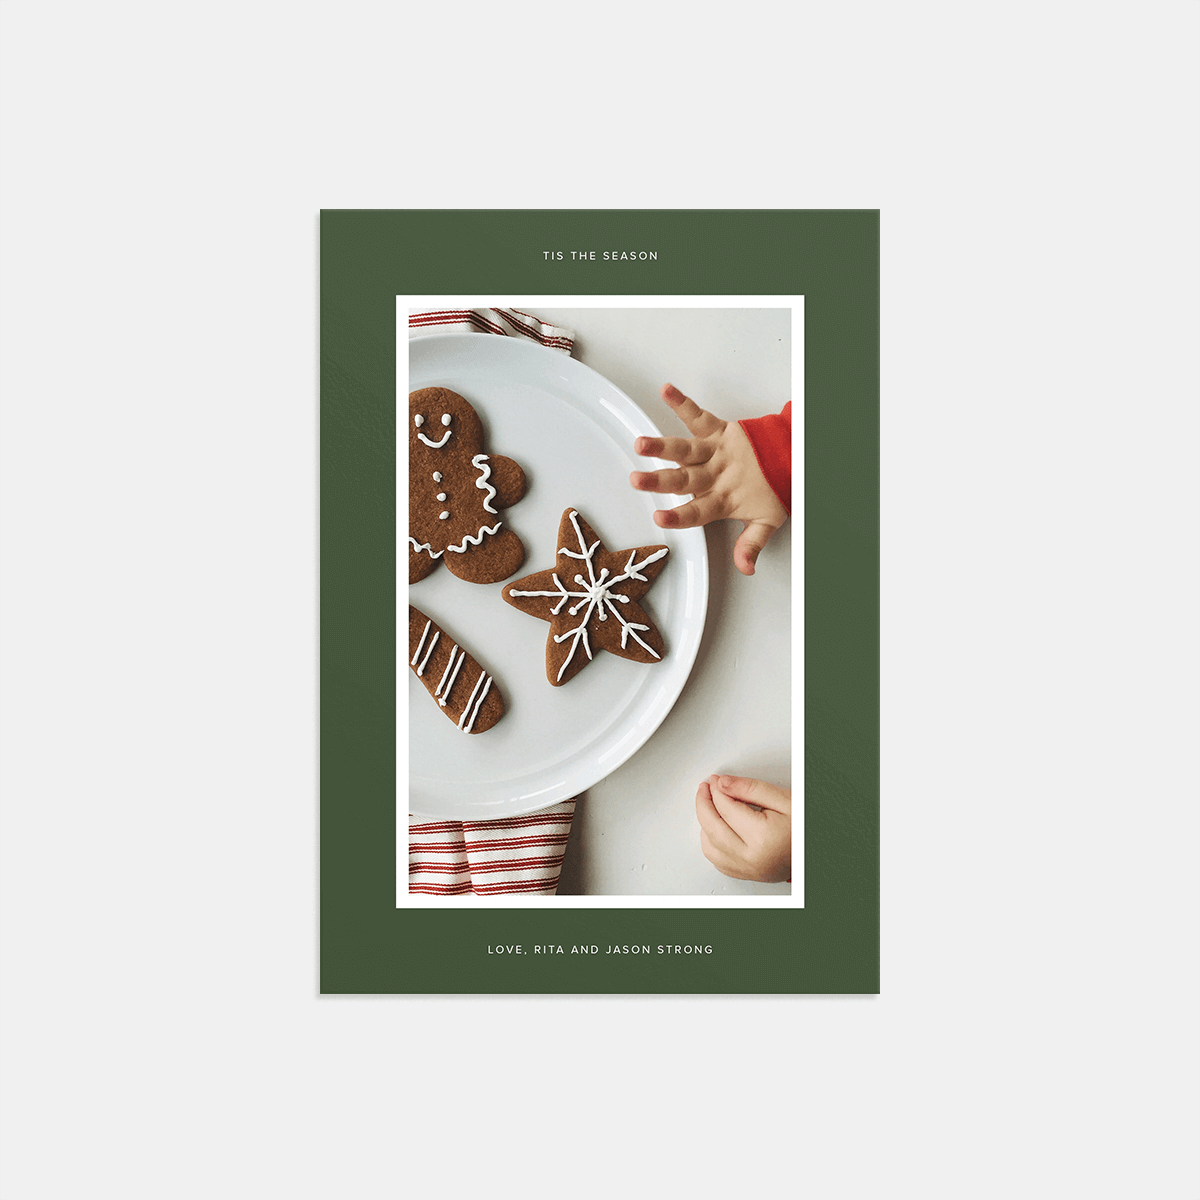 Same photo of cookie plate on holiday card with green border